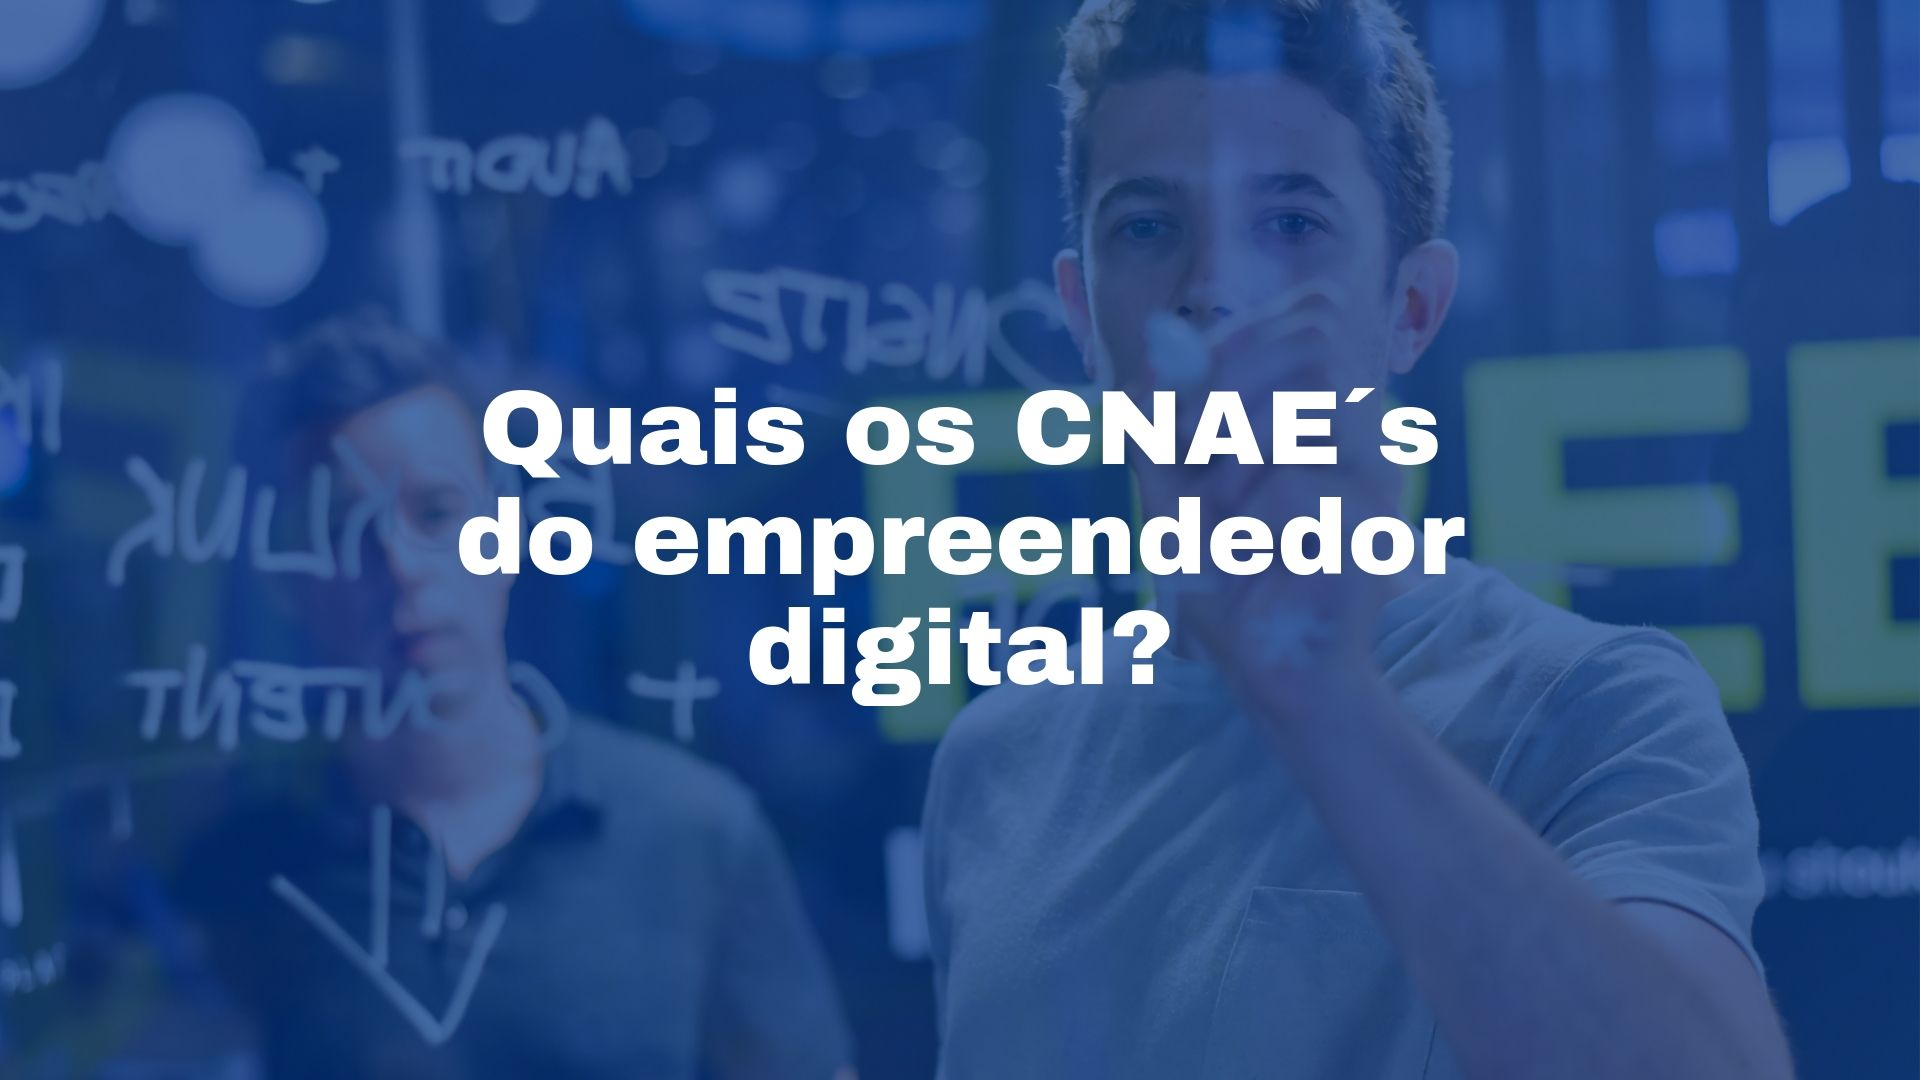 Contabilidade para marketing digital - cnaes do empreendedor digital